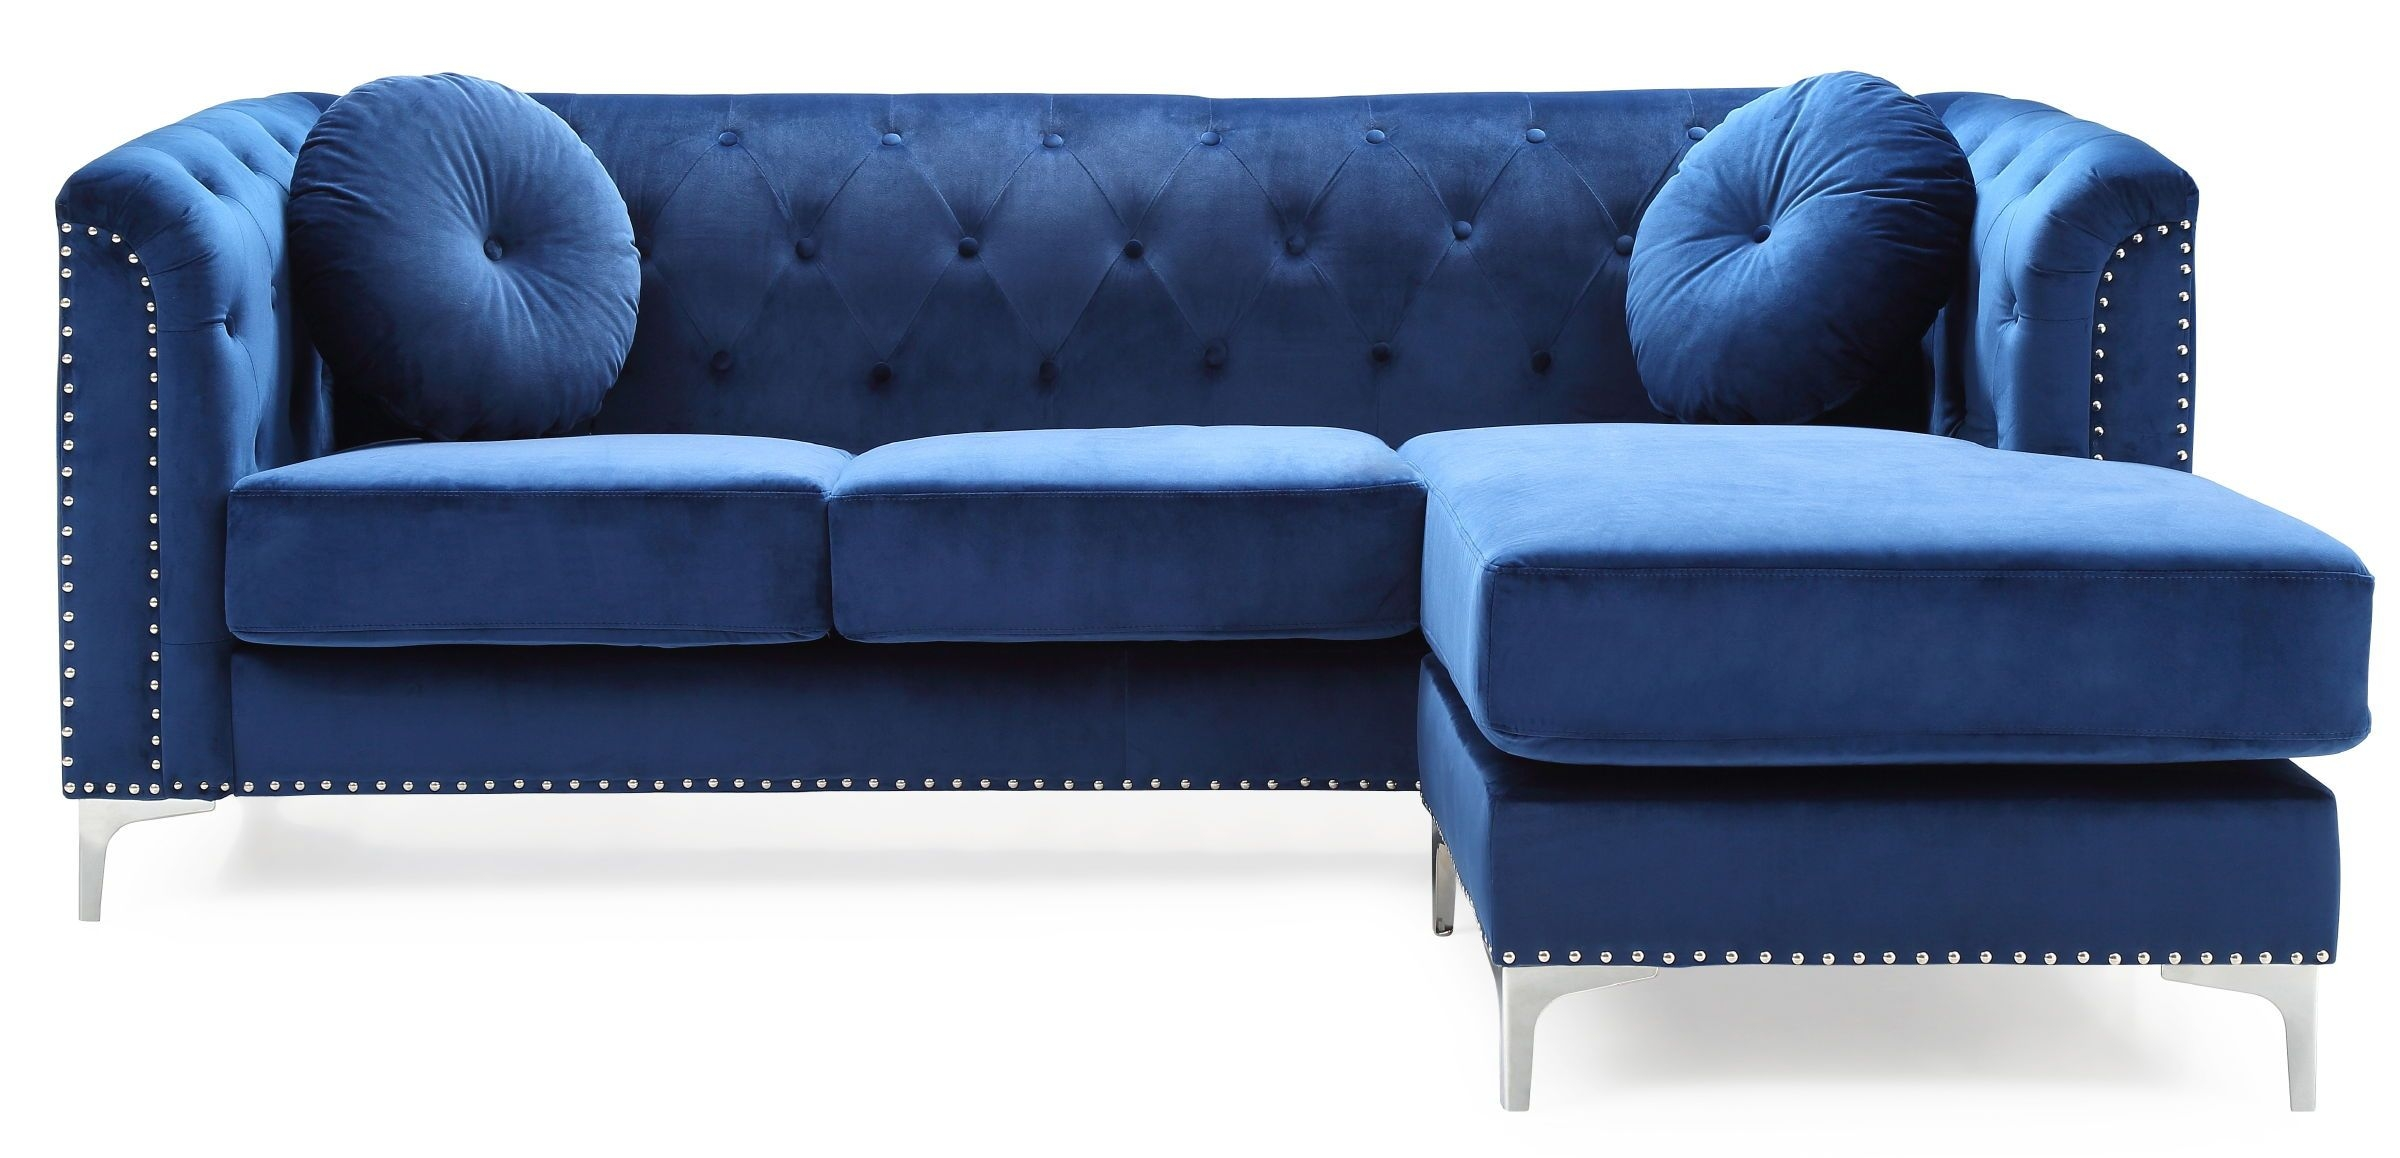 Glory Furniture Pompano Contemporary Navy Blue Sofa Chaise  The Classy Home